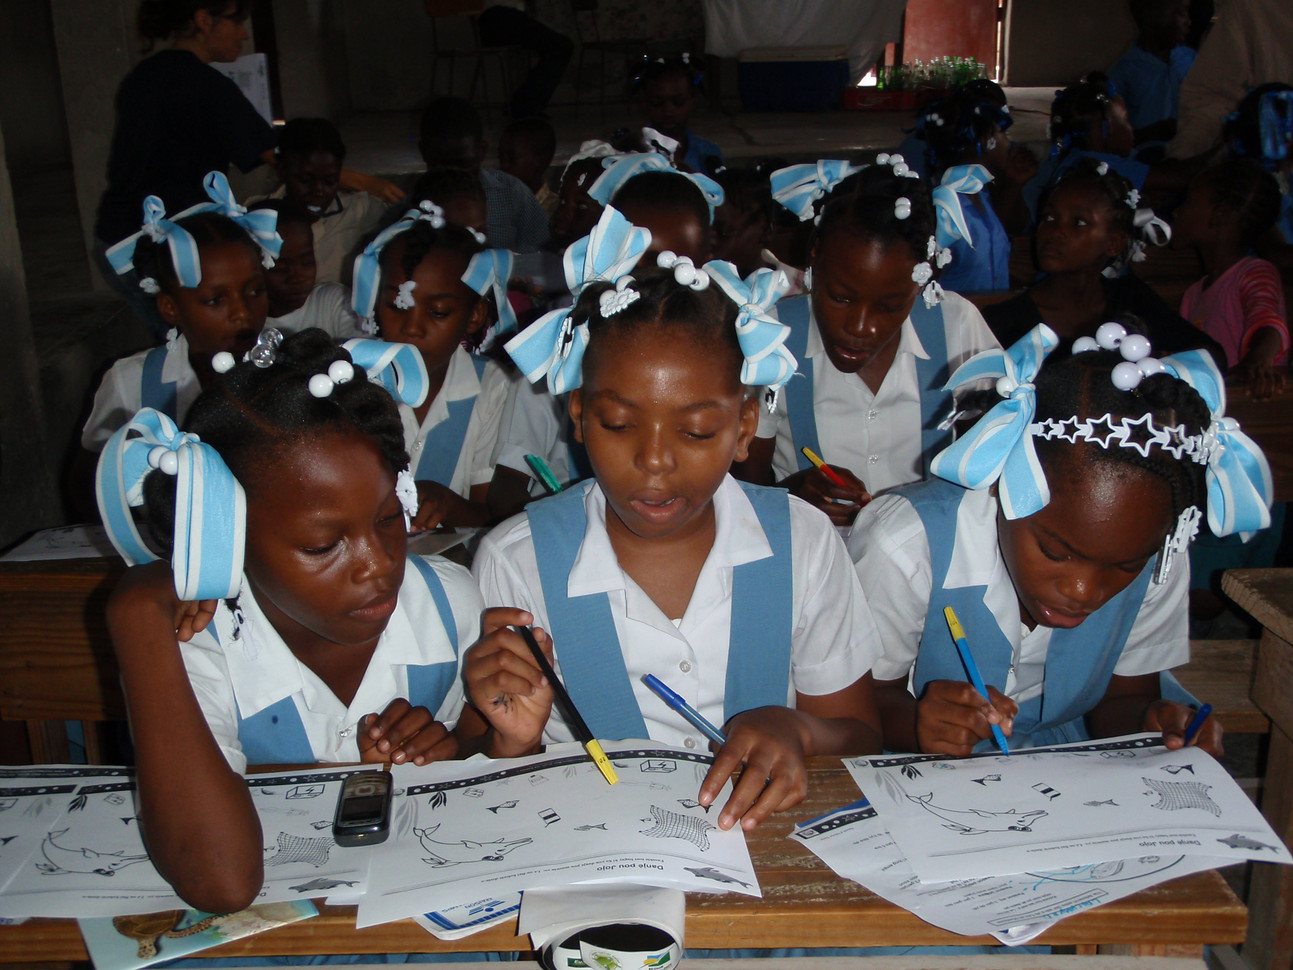 Educational activities for over 15,000 children and adults in over 40 communities.